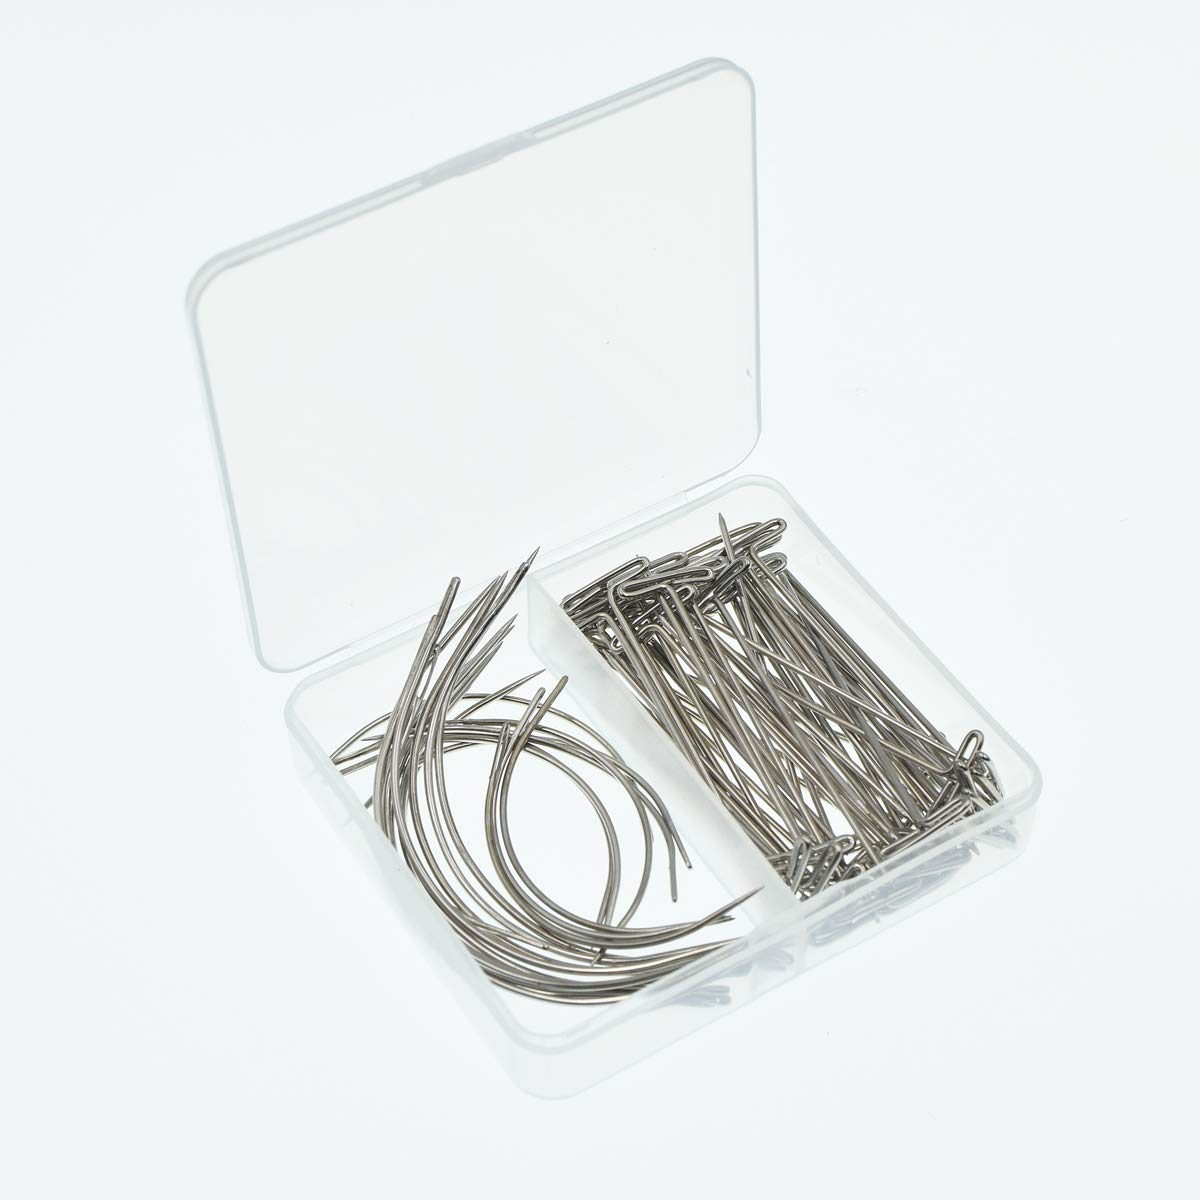 70 Pieces Wig Making Pins Needles Set Wig T Pins And C Type Curved